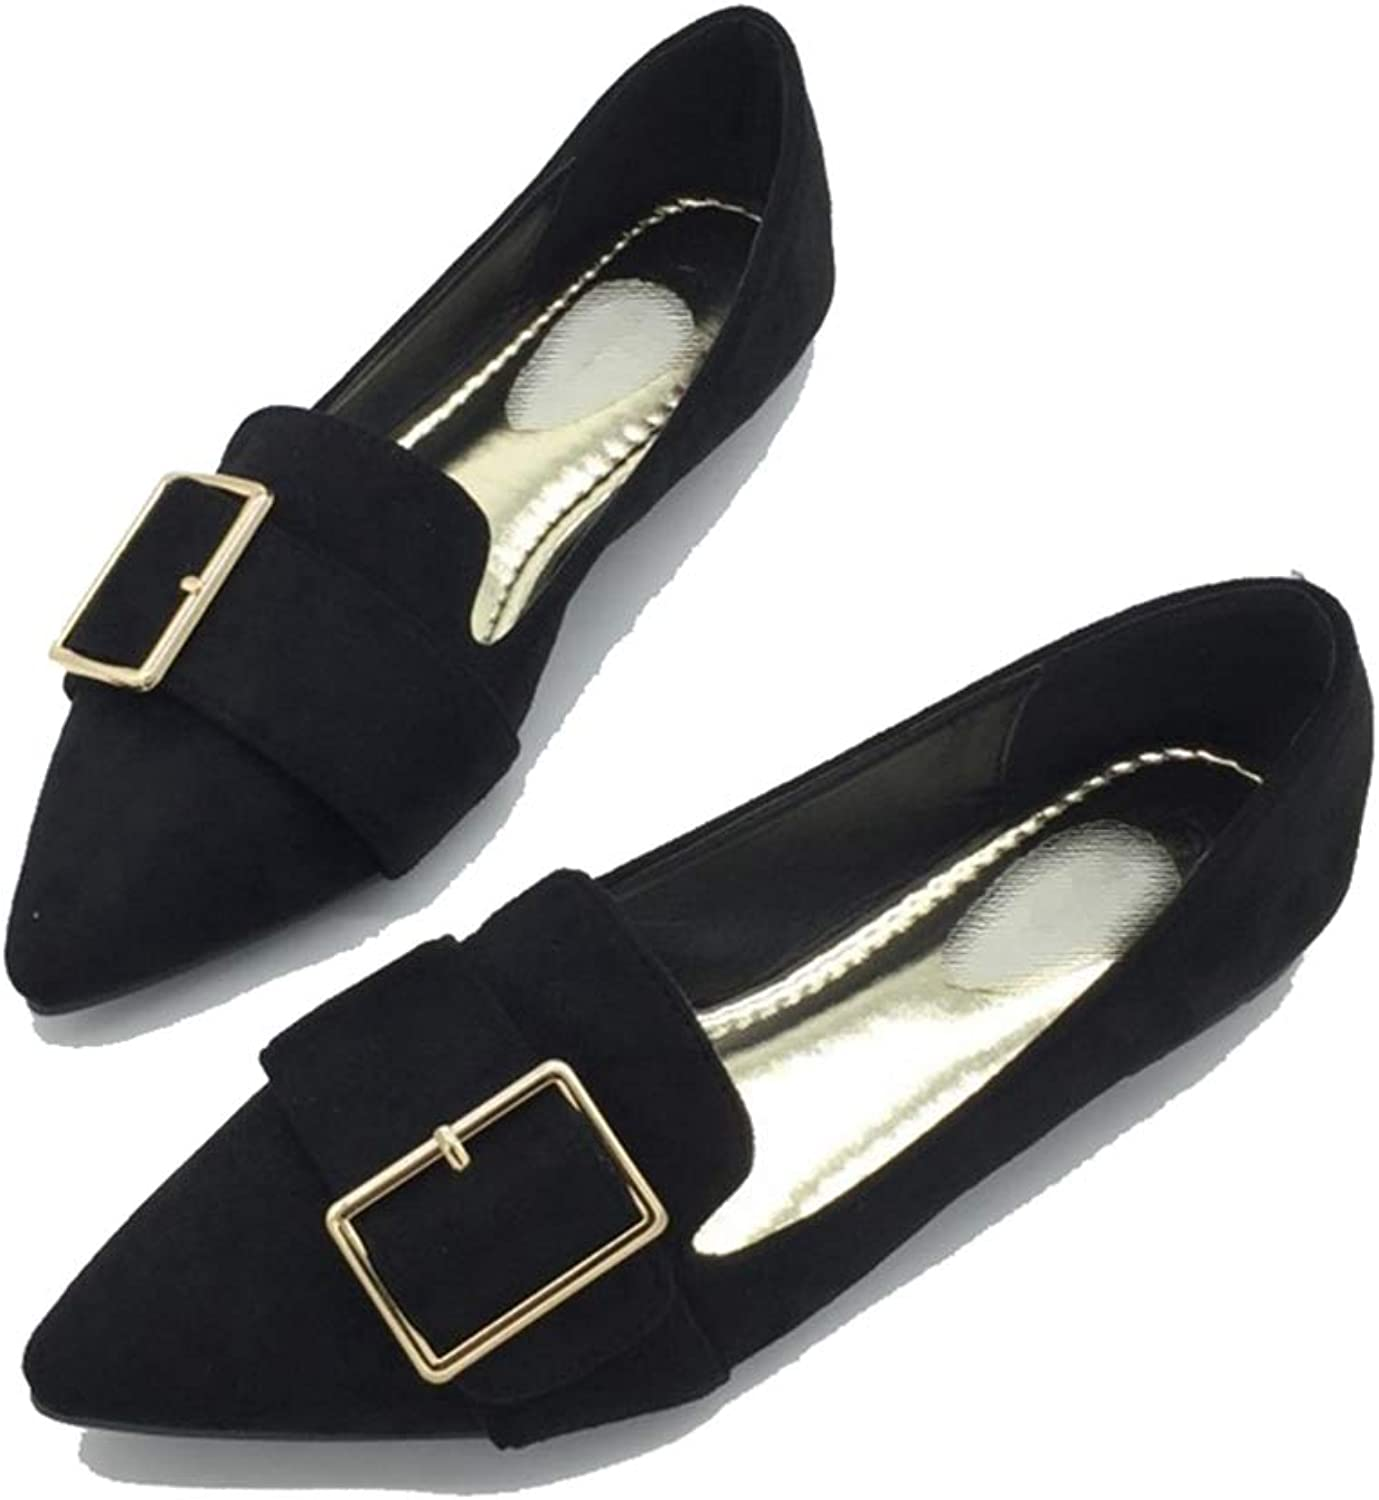 Kyle Walsh Pa Women Flats shoes Pointed Toe Metal Buckle Female Soft Work Driving Footwear